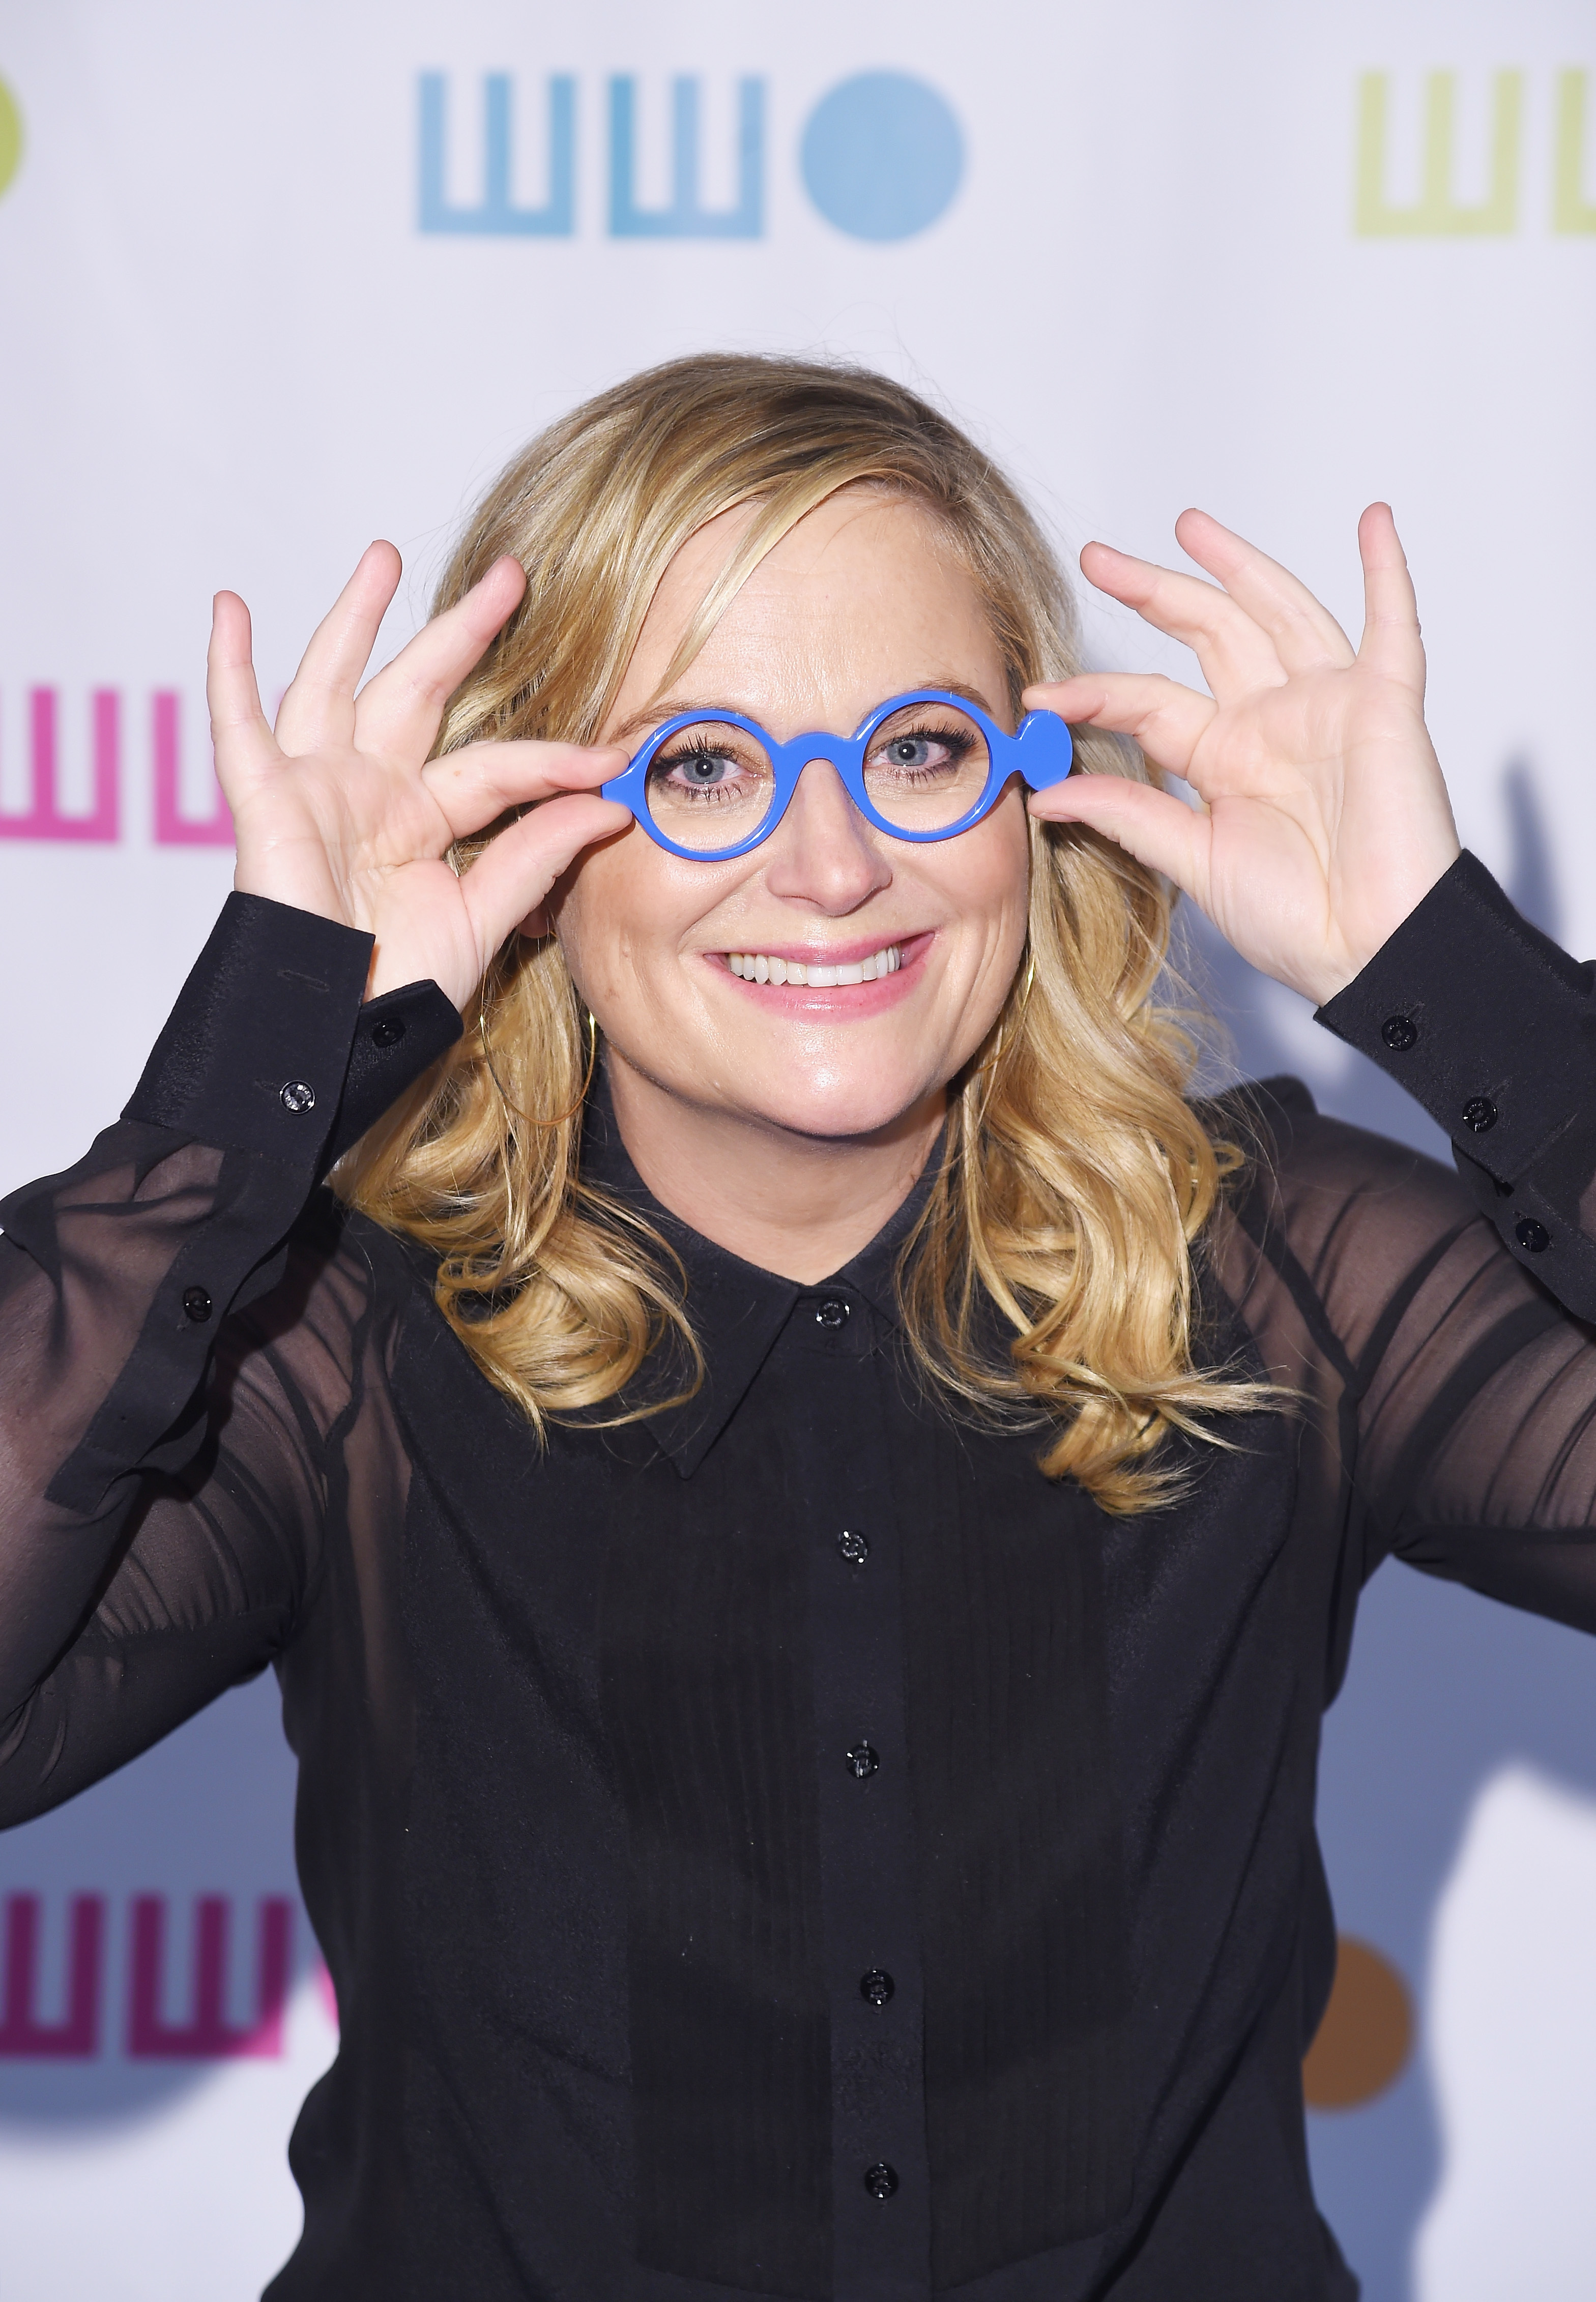 Amy Poehler attends the Worldwide Orphans 13th Annual Gala in New York City on Nov. 13, 2017.